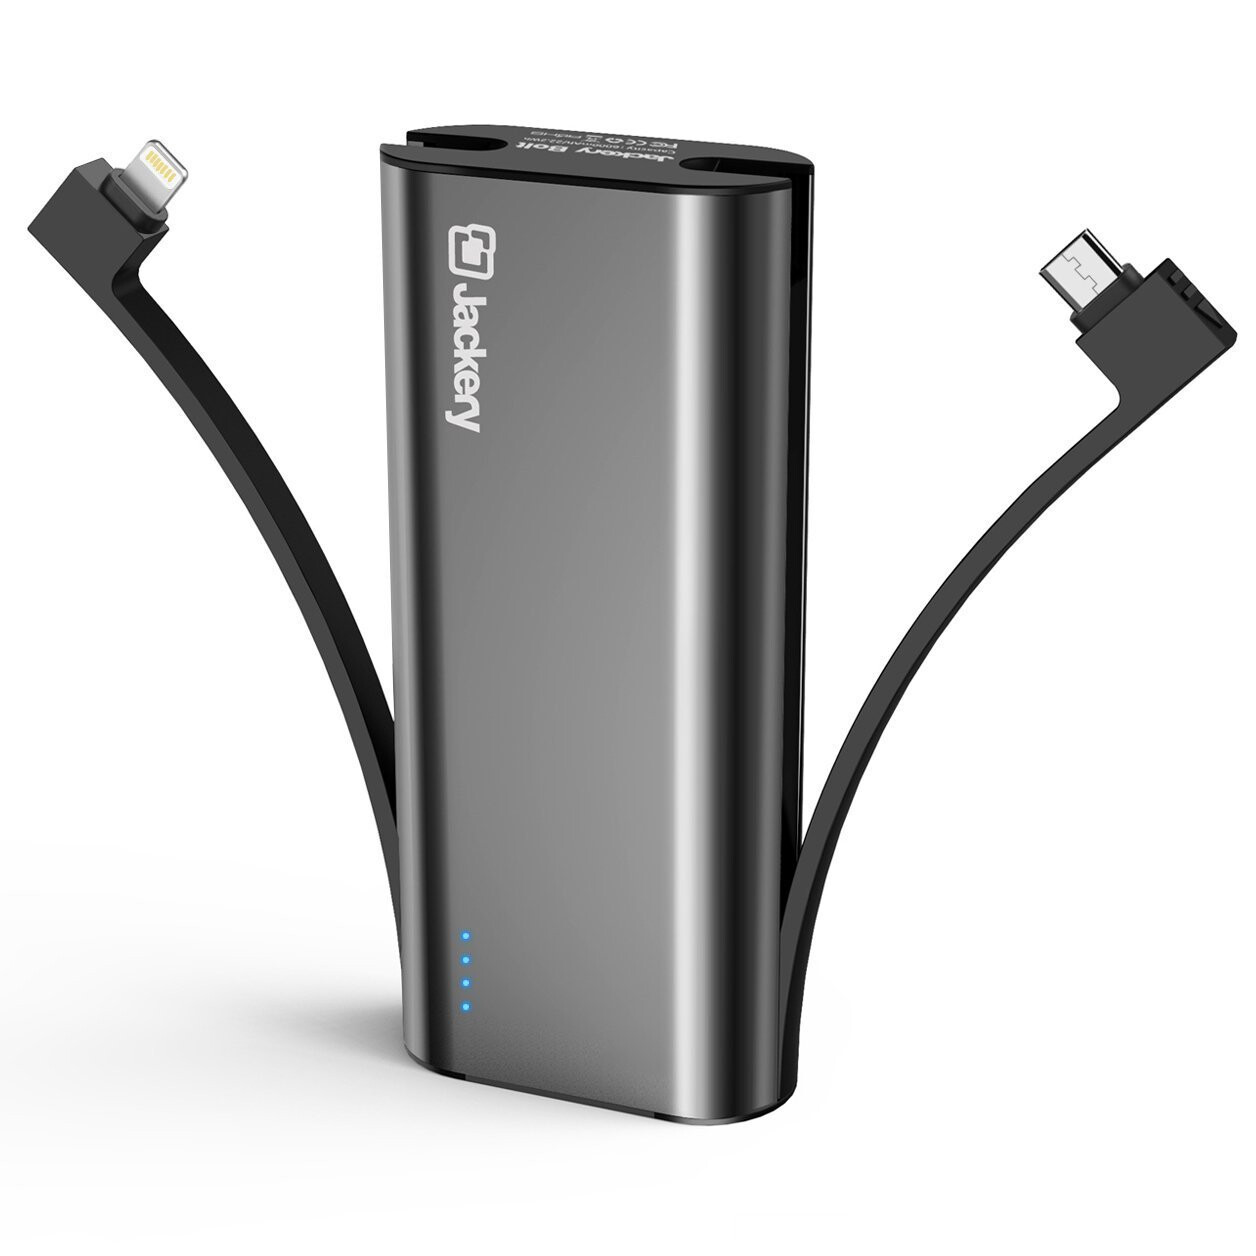 The Best Portable Chargers And Powerbanks To Buy In 2018 Samsung Galaxy S9 Free Anker Powerbank Mah 10000 Black Jackery Bolt